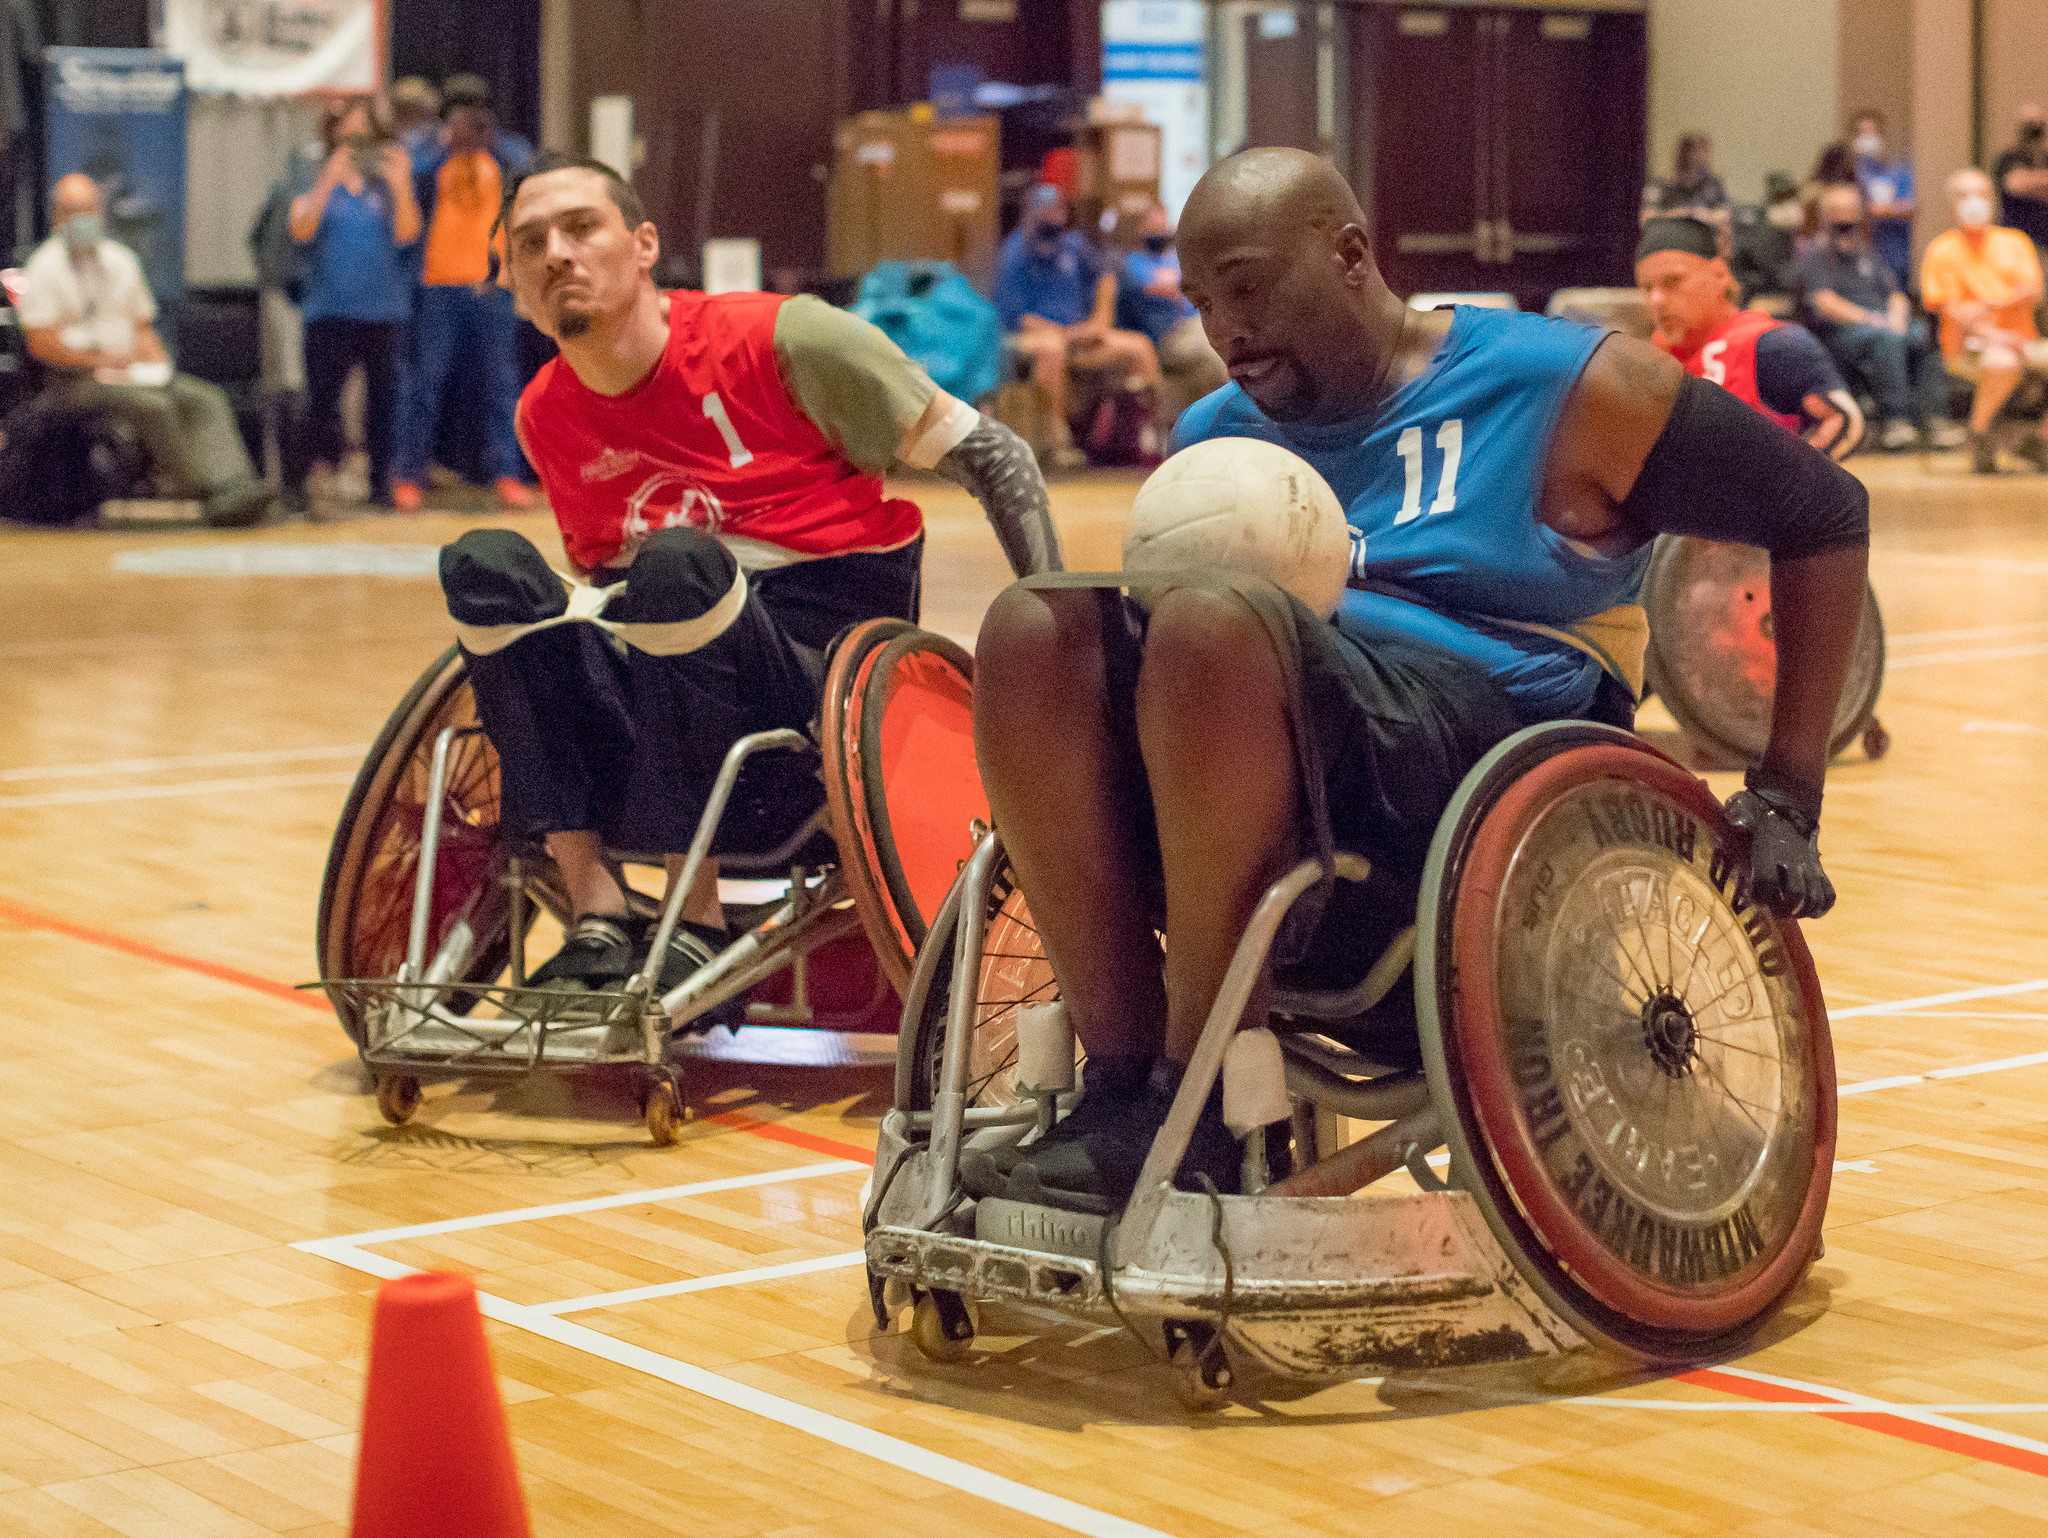 Johnny Holland, here on the verge of scoring, came out of retirement to play wheelchair rugby for the first time in 15 years.